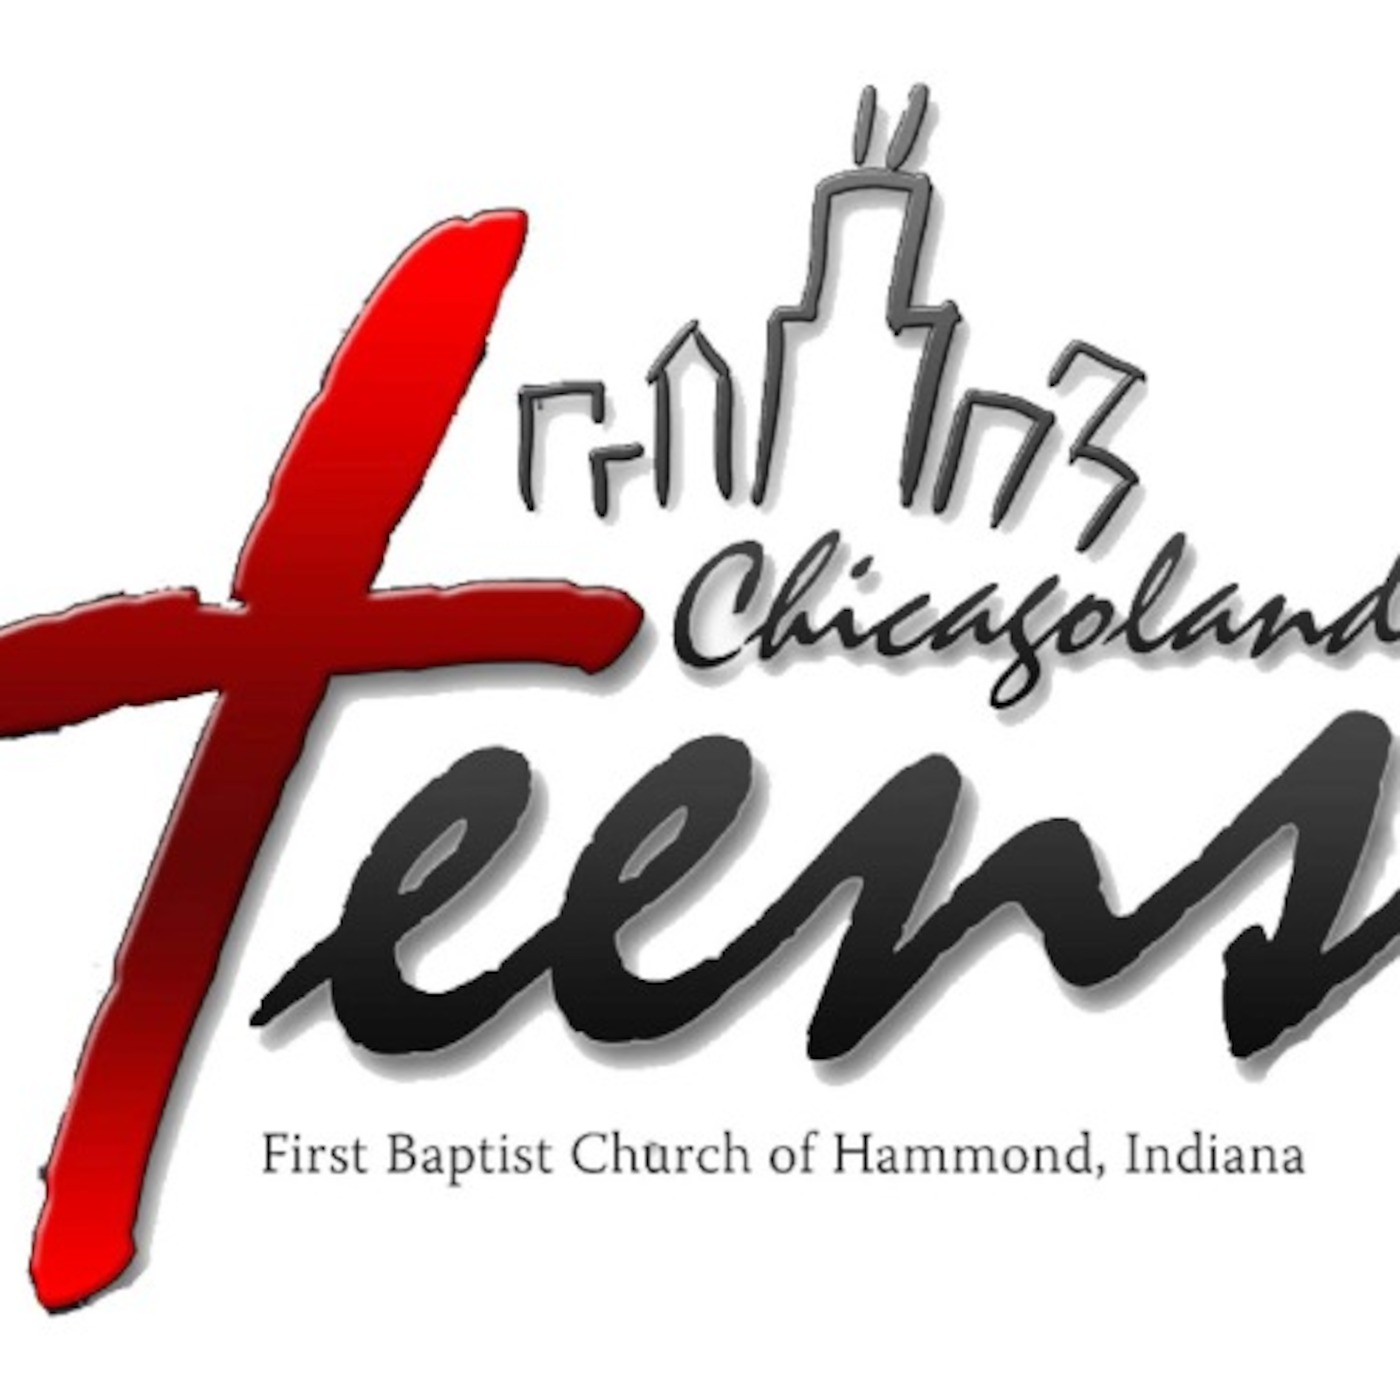 FBC Hammond Chicagoland Teens